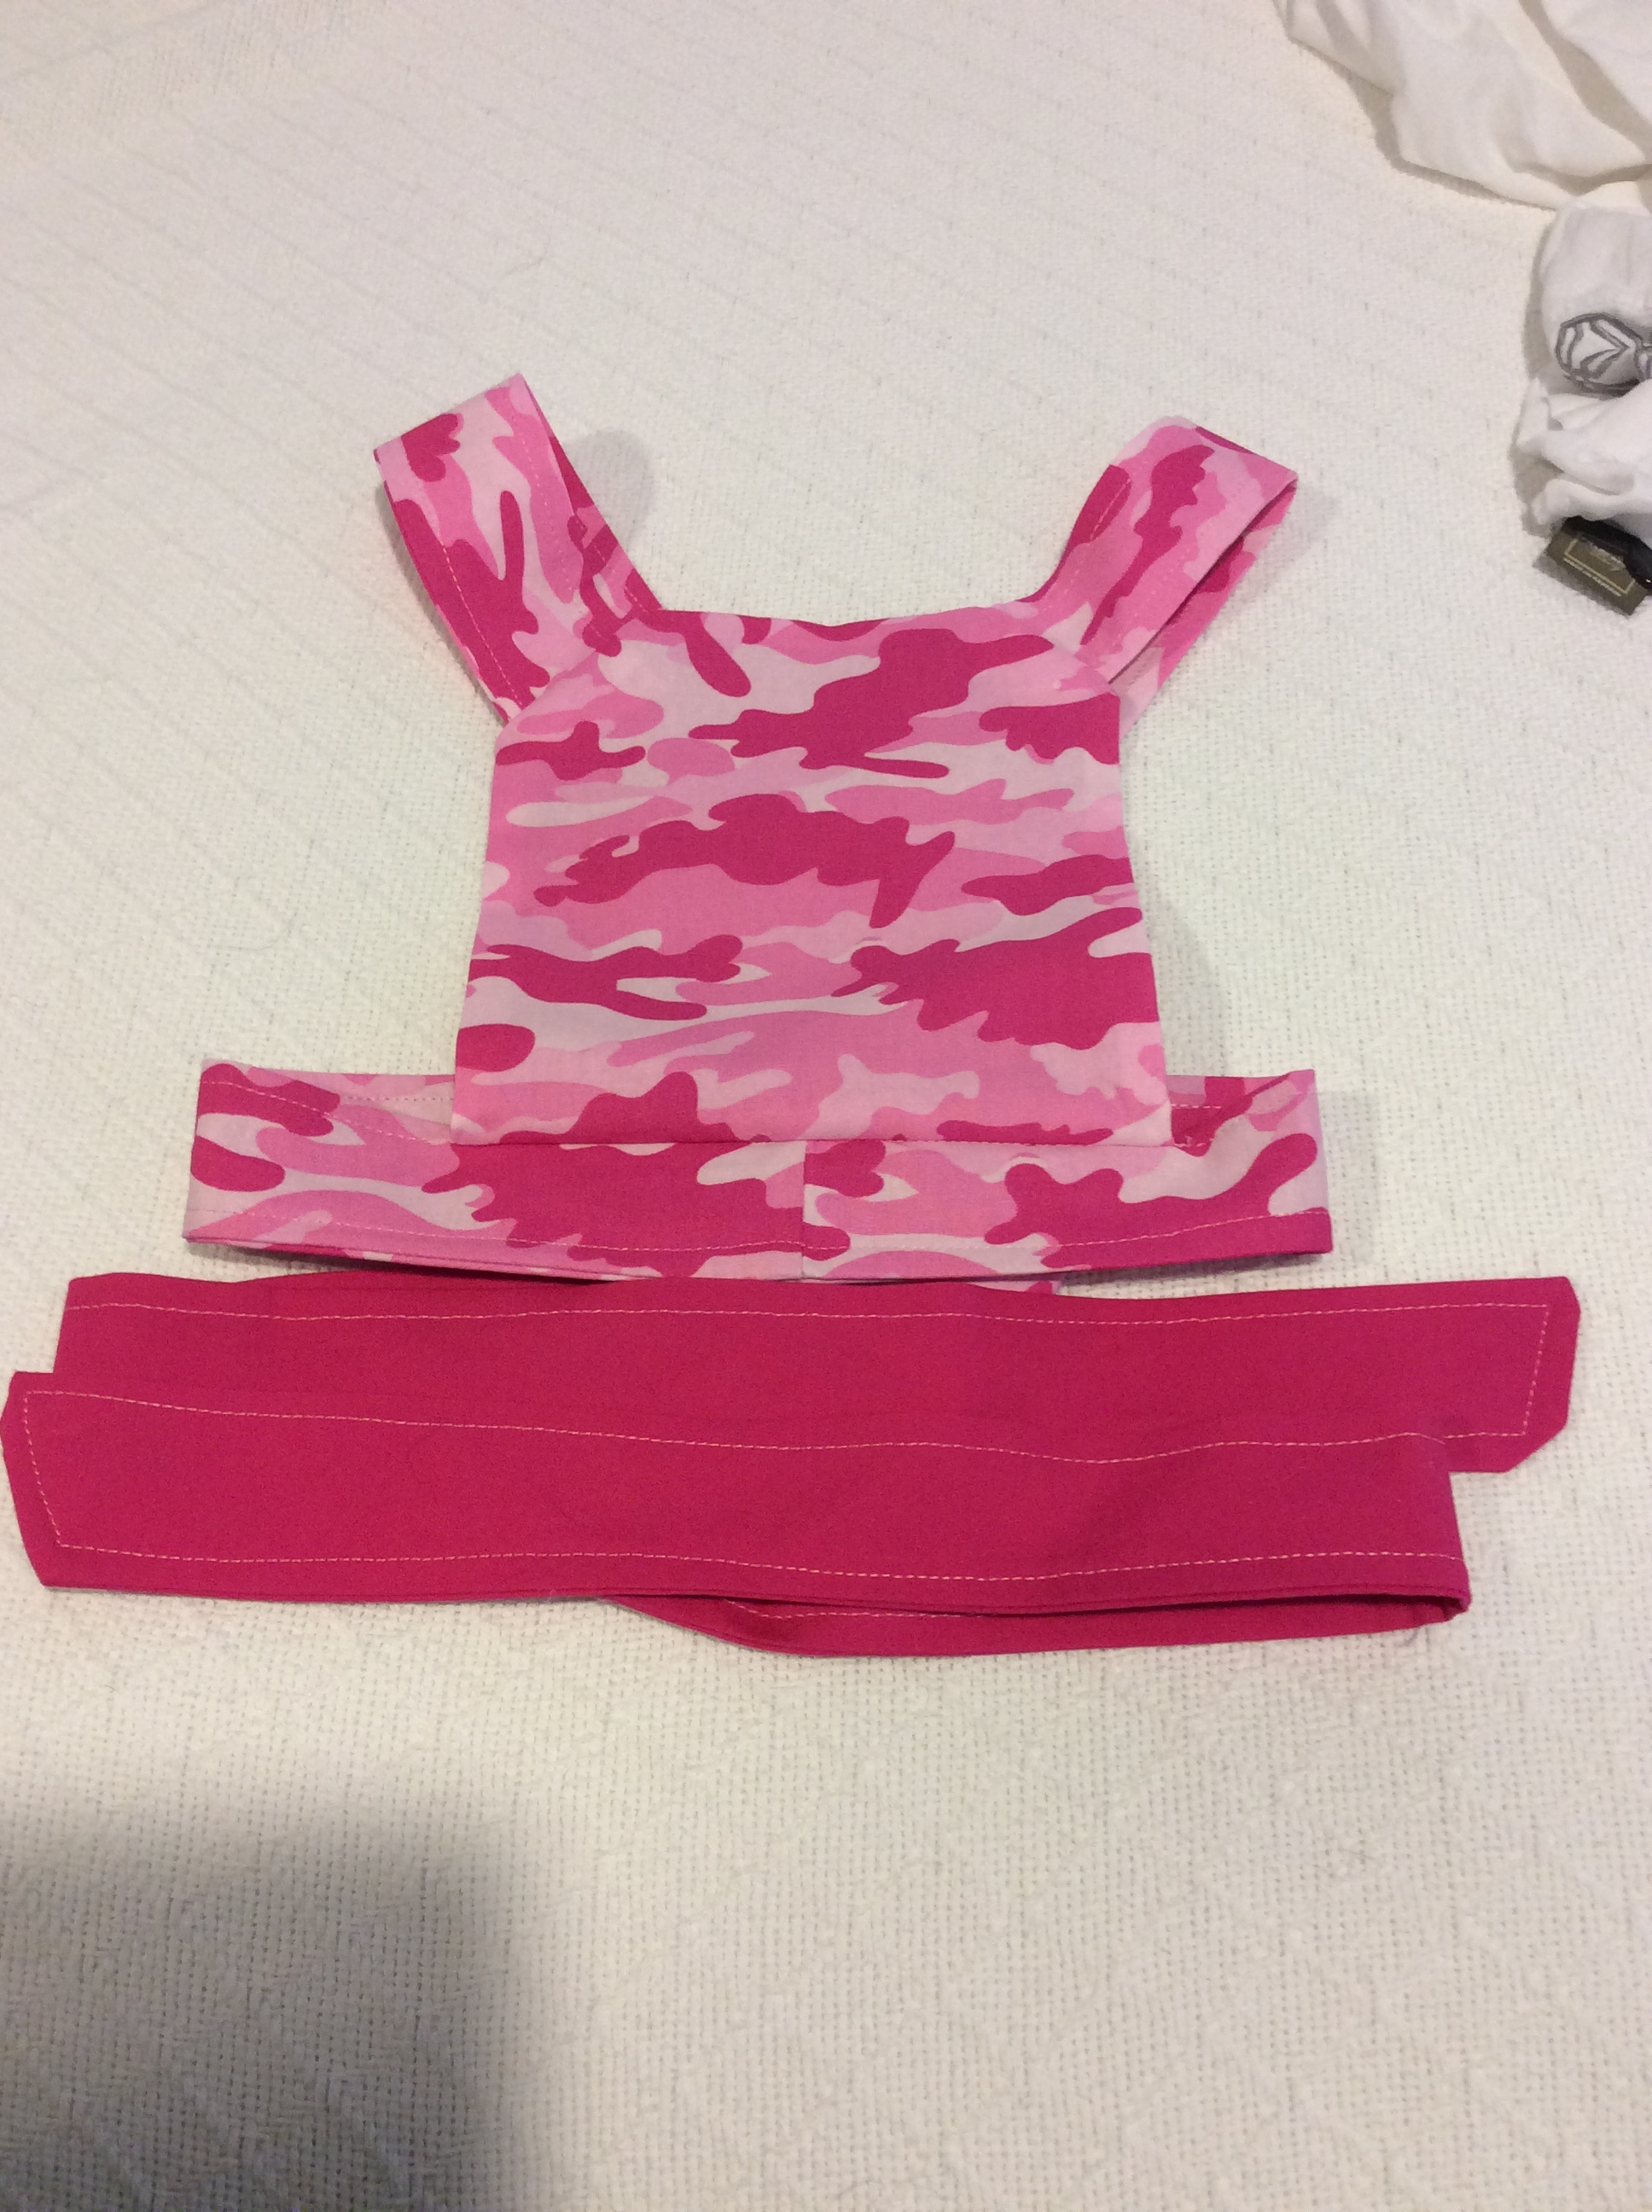 Pink Cammo Baby Carrier